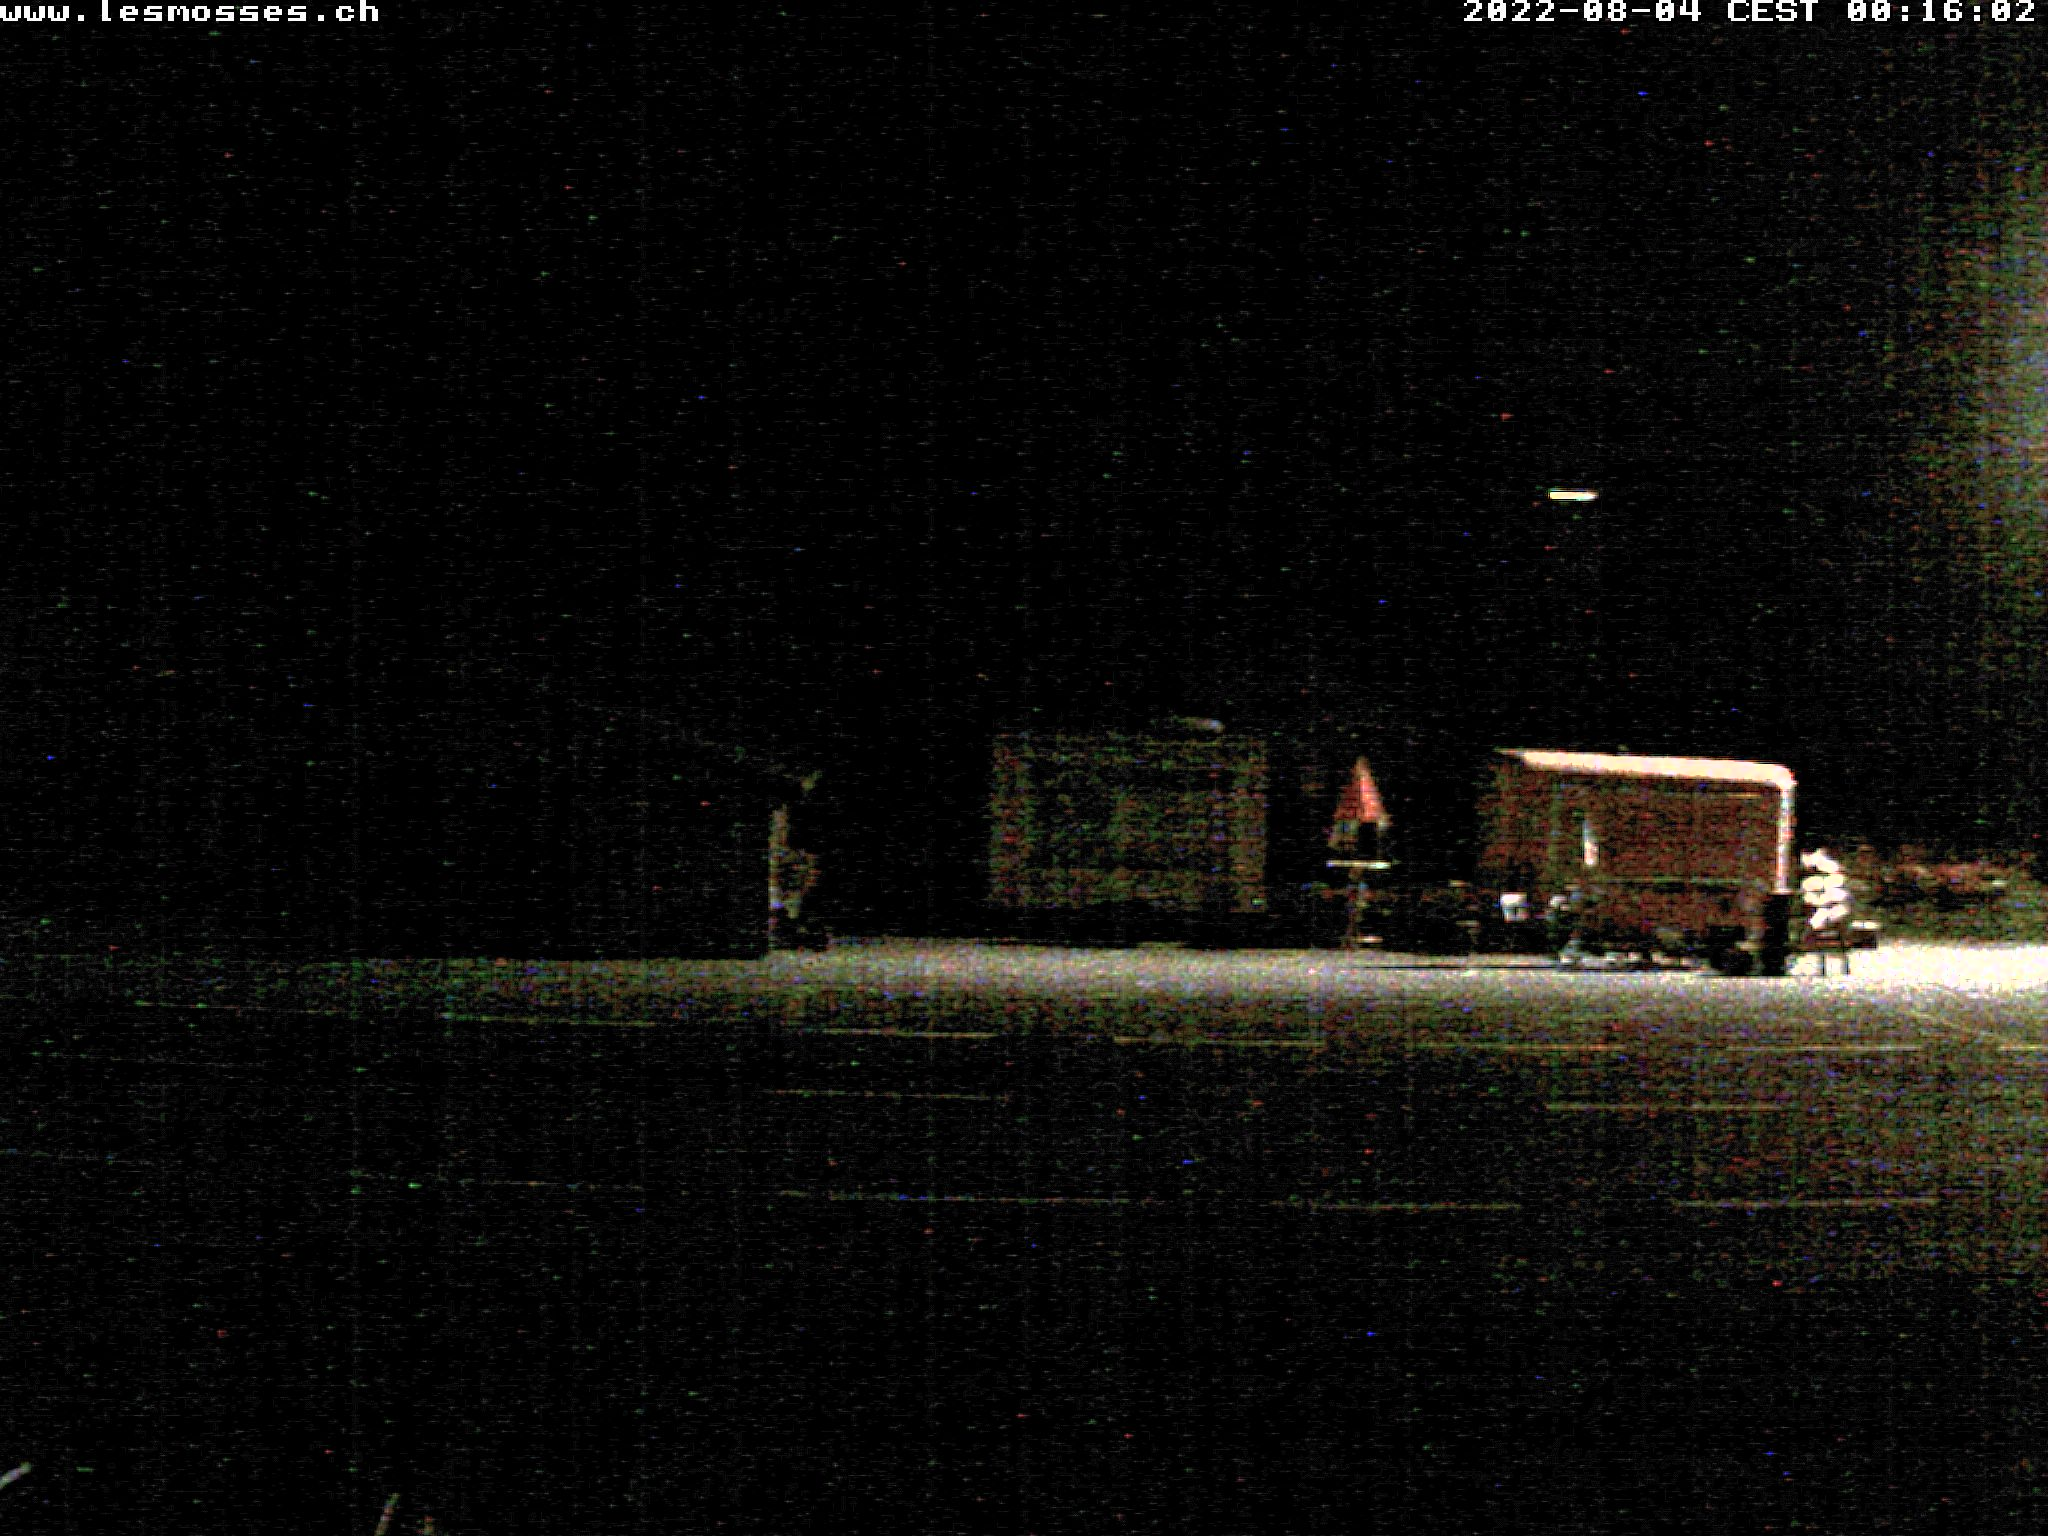 Webcam Les Mosses - Alt- 1445 m.